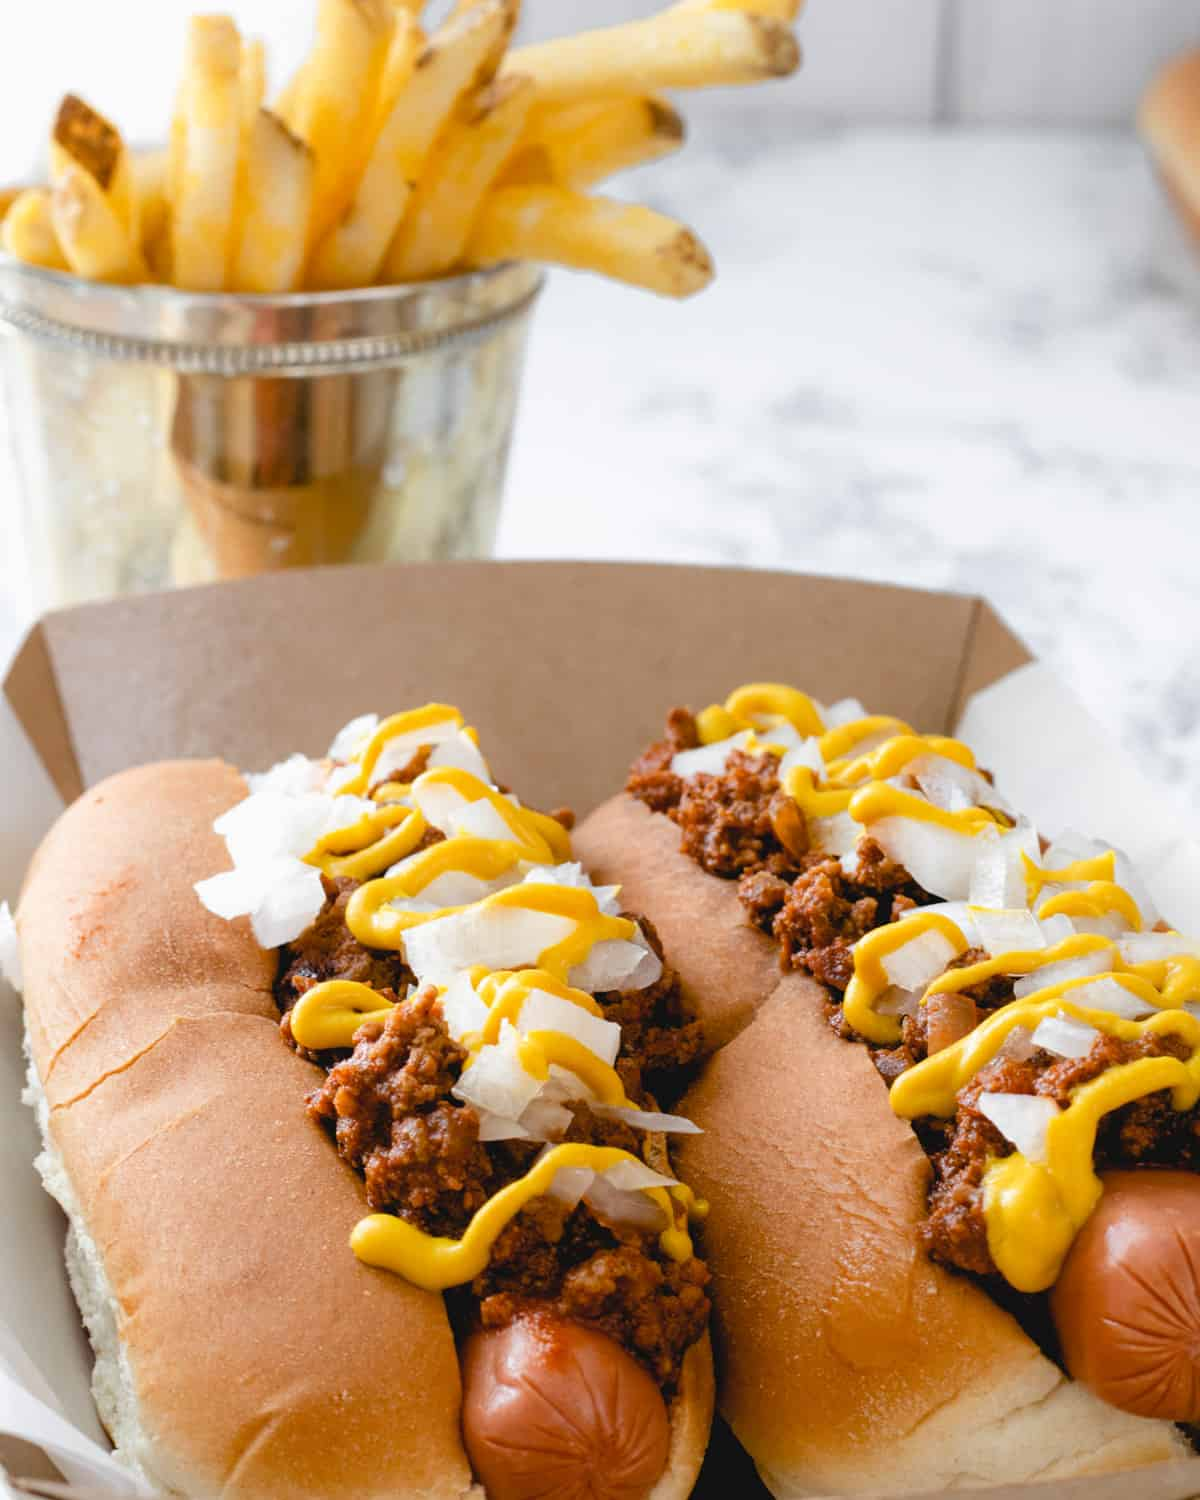 Two coney dogs with French fries behind them.